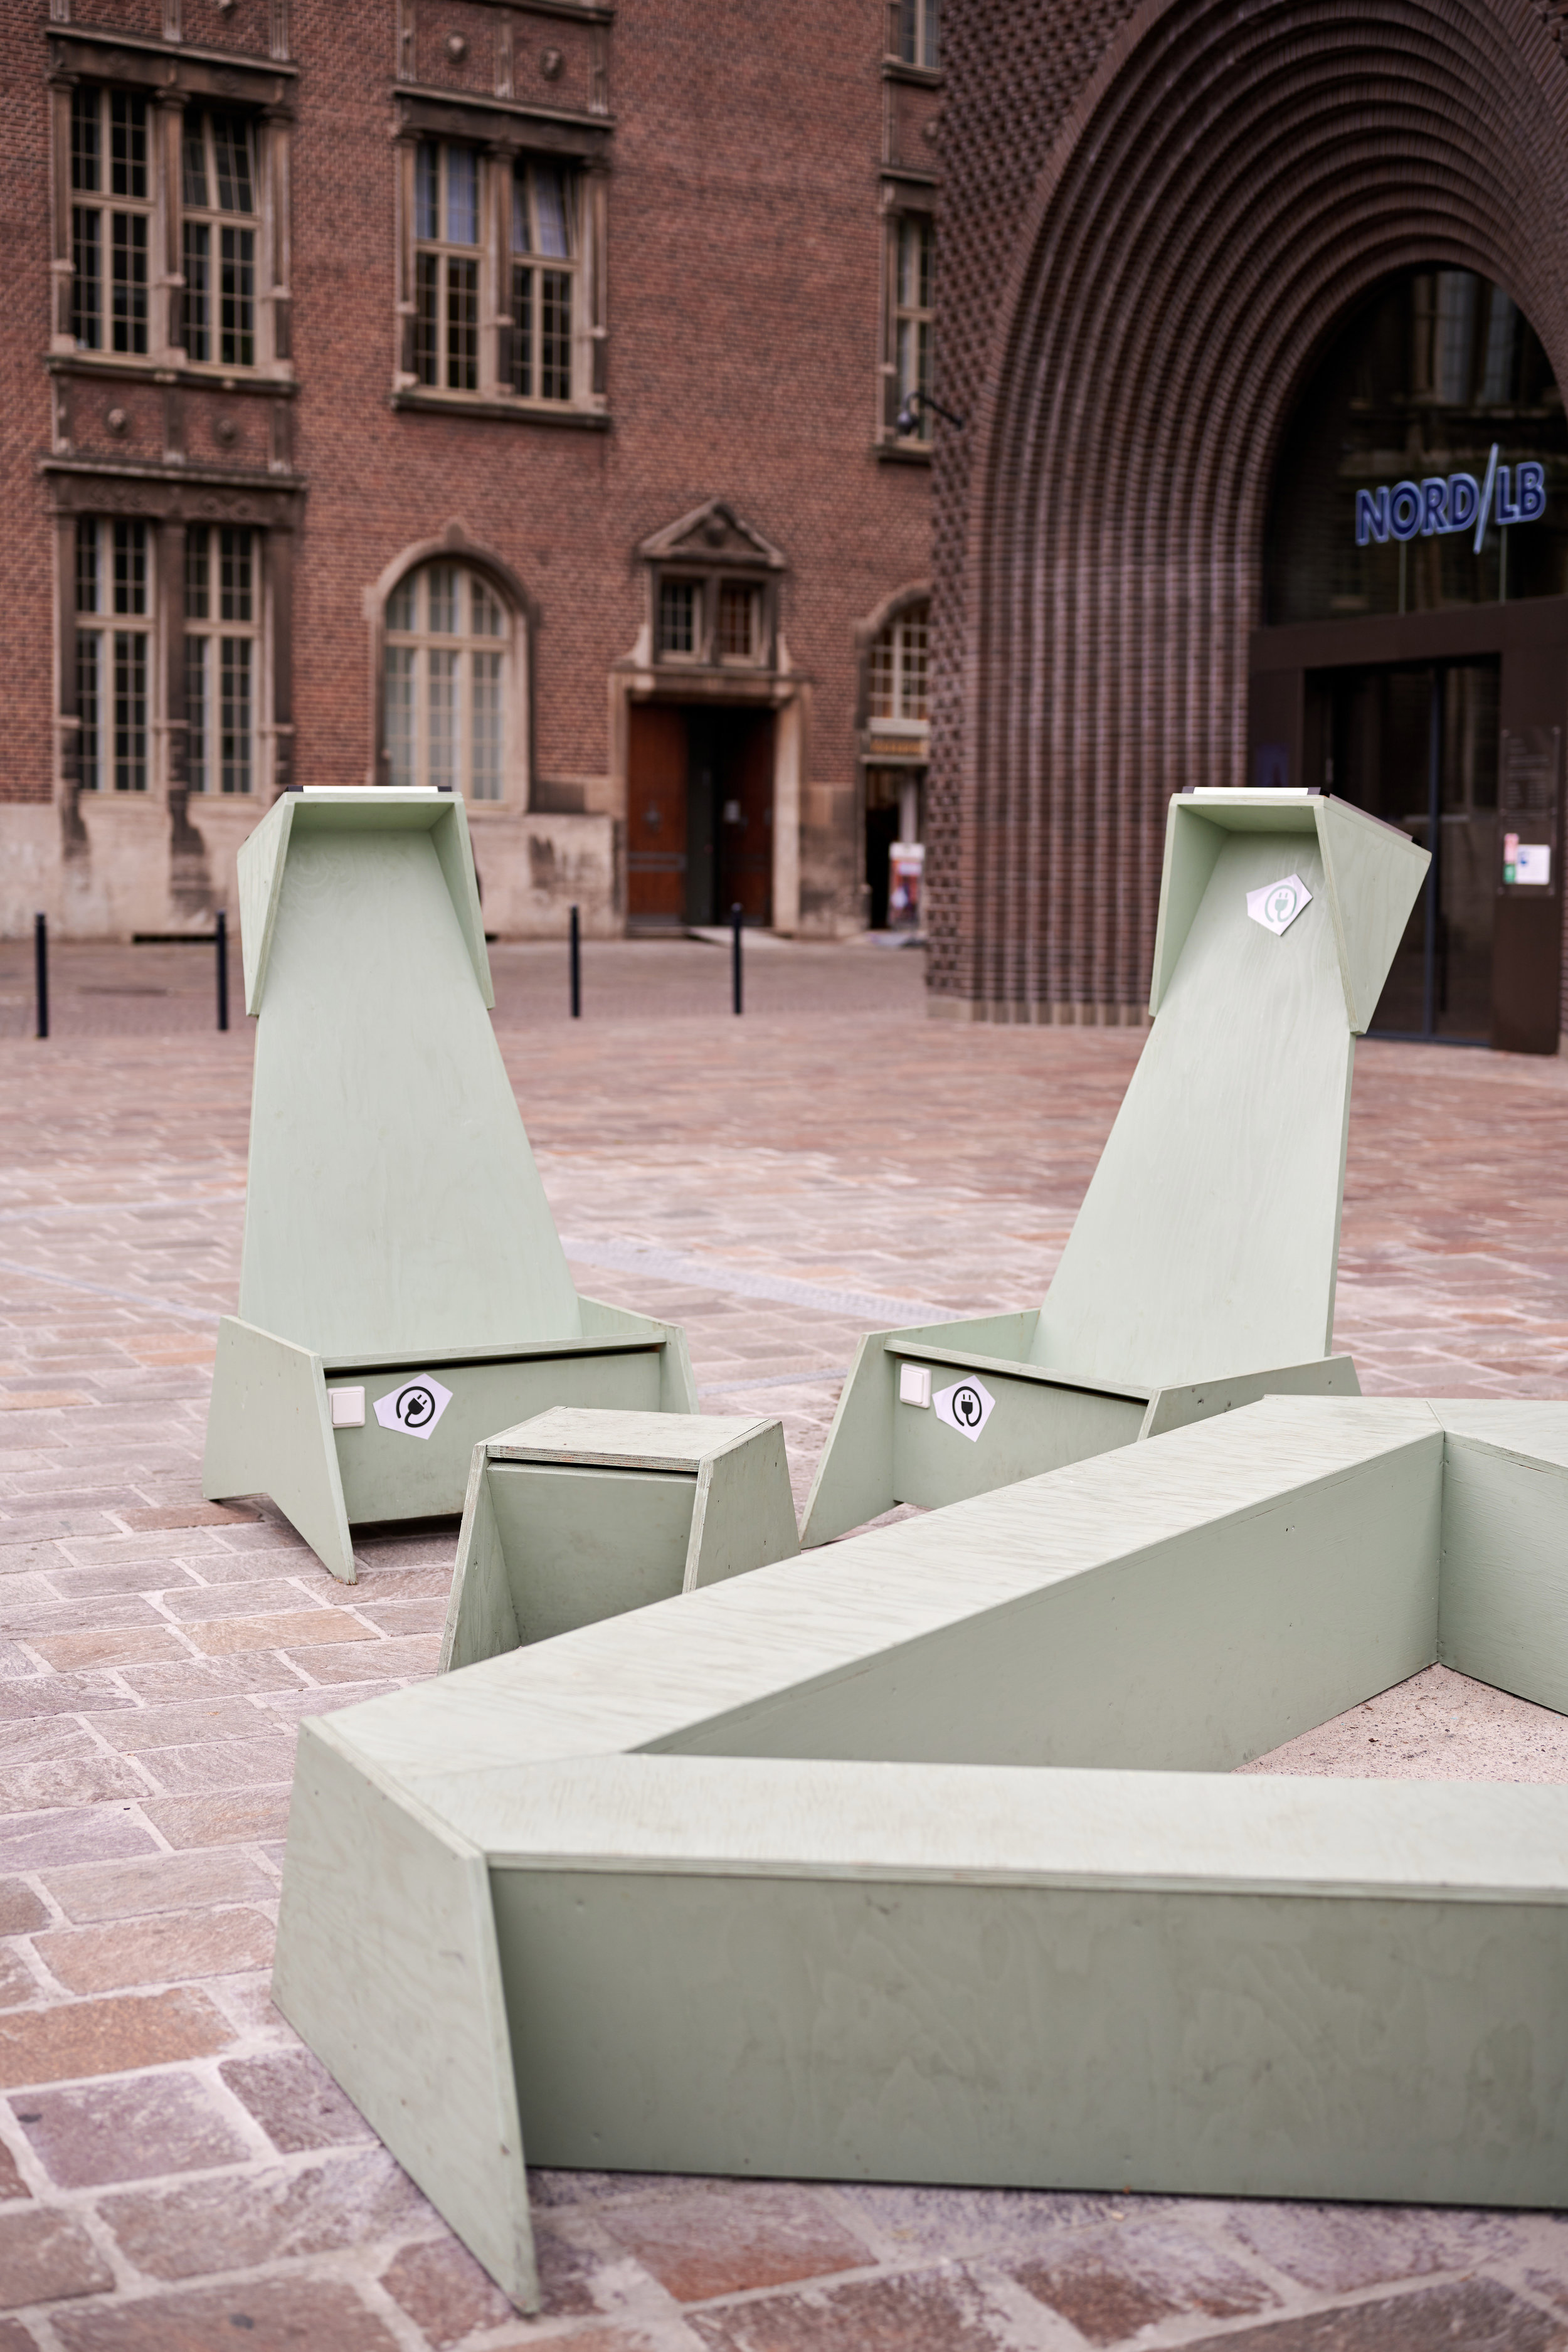 Image: Wirth=Architekten's public furniture with solar-powered battery-chargers on Bremen's central Domshof square